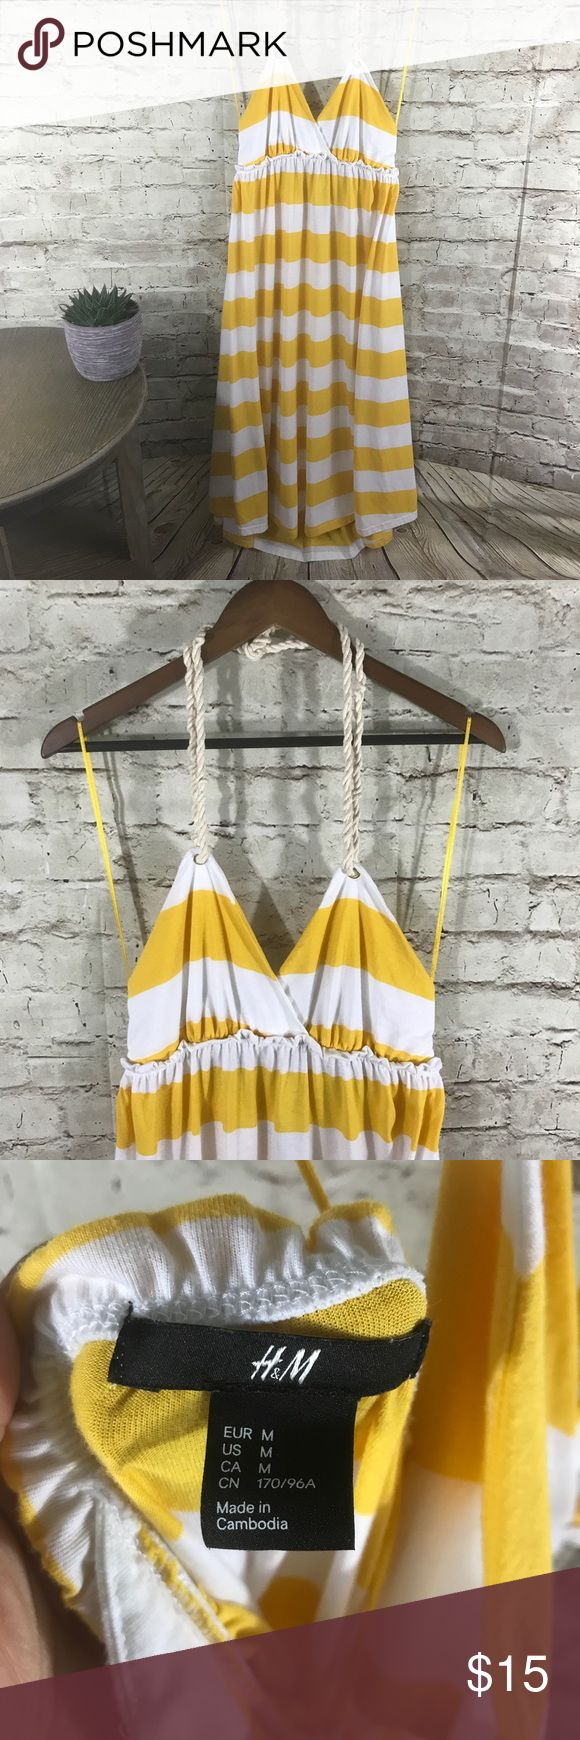 H&M light summer beach dress Nice and roomie summer beach dress , can be a great maternity dress as well. Open back and tight up at the back of the neck. Ankle length. Size M H&M Dresses Maxi